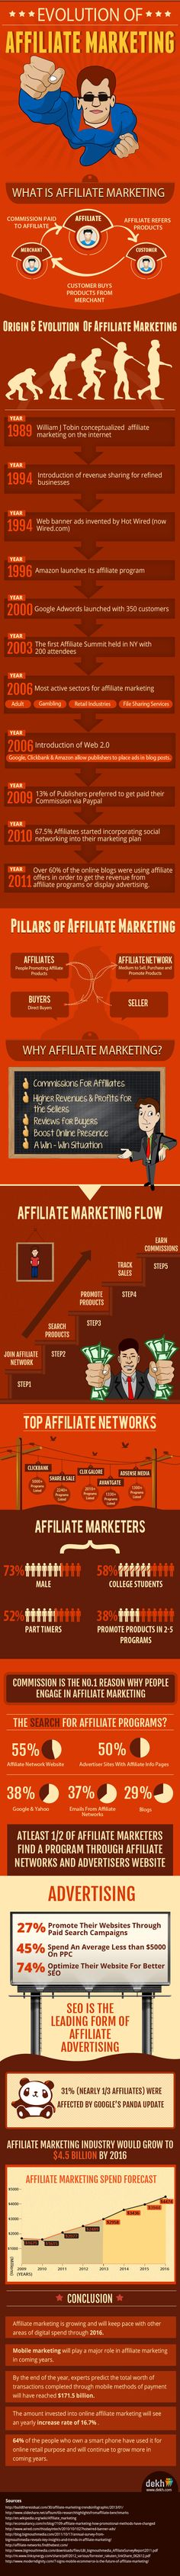 The Evolution of Affiliate Marketing - http://www.dekh.com/blog/post/evolution-of-the-affiliate-marketing-industry